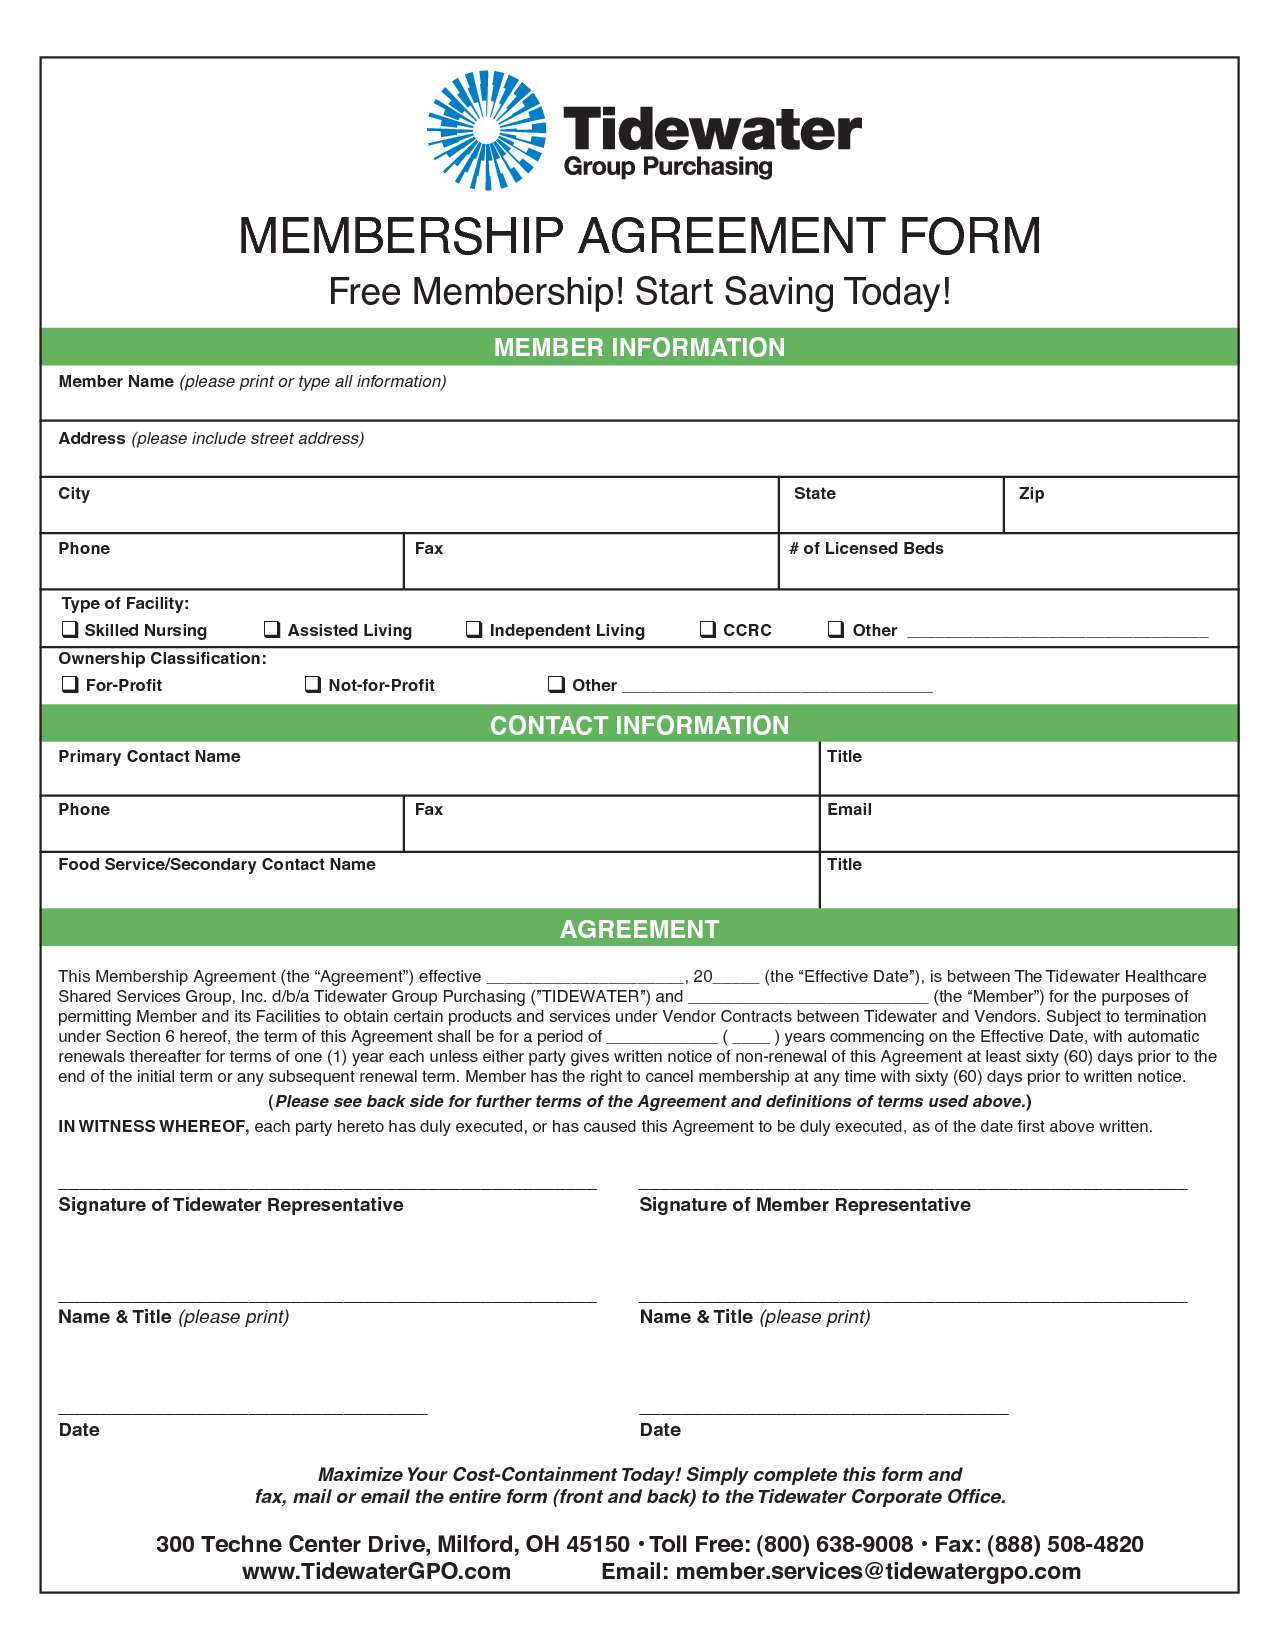 Invitation forms Best Of Membership Agreement Template Invitation